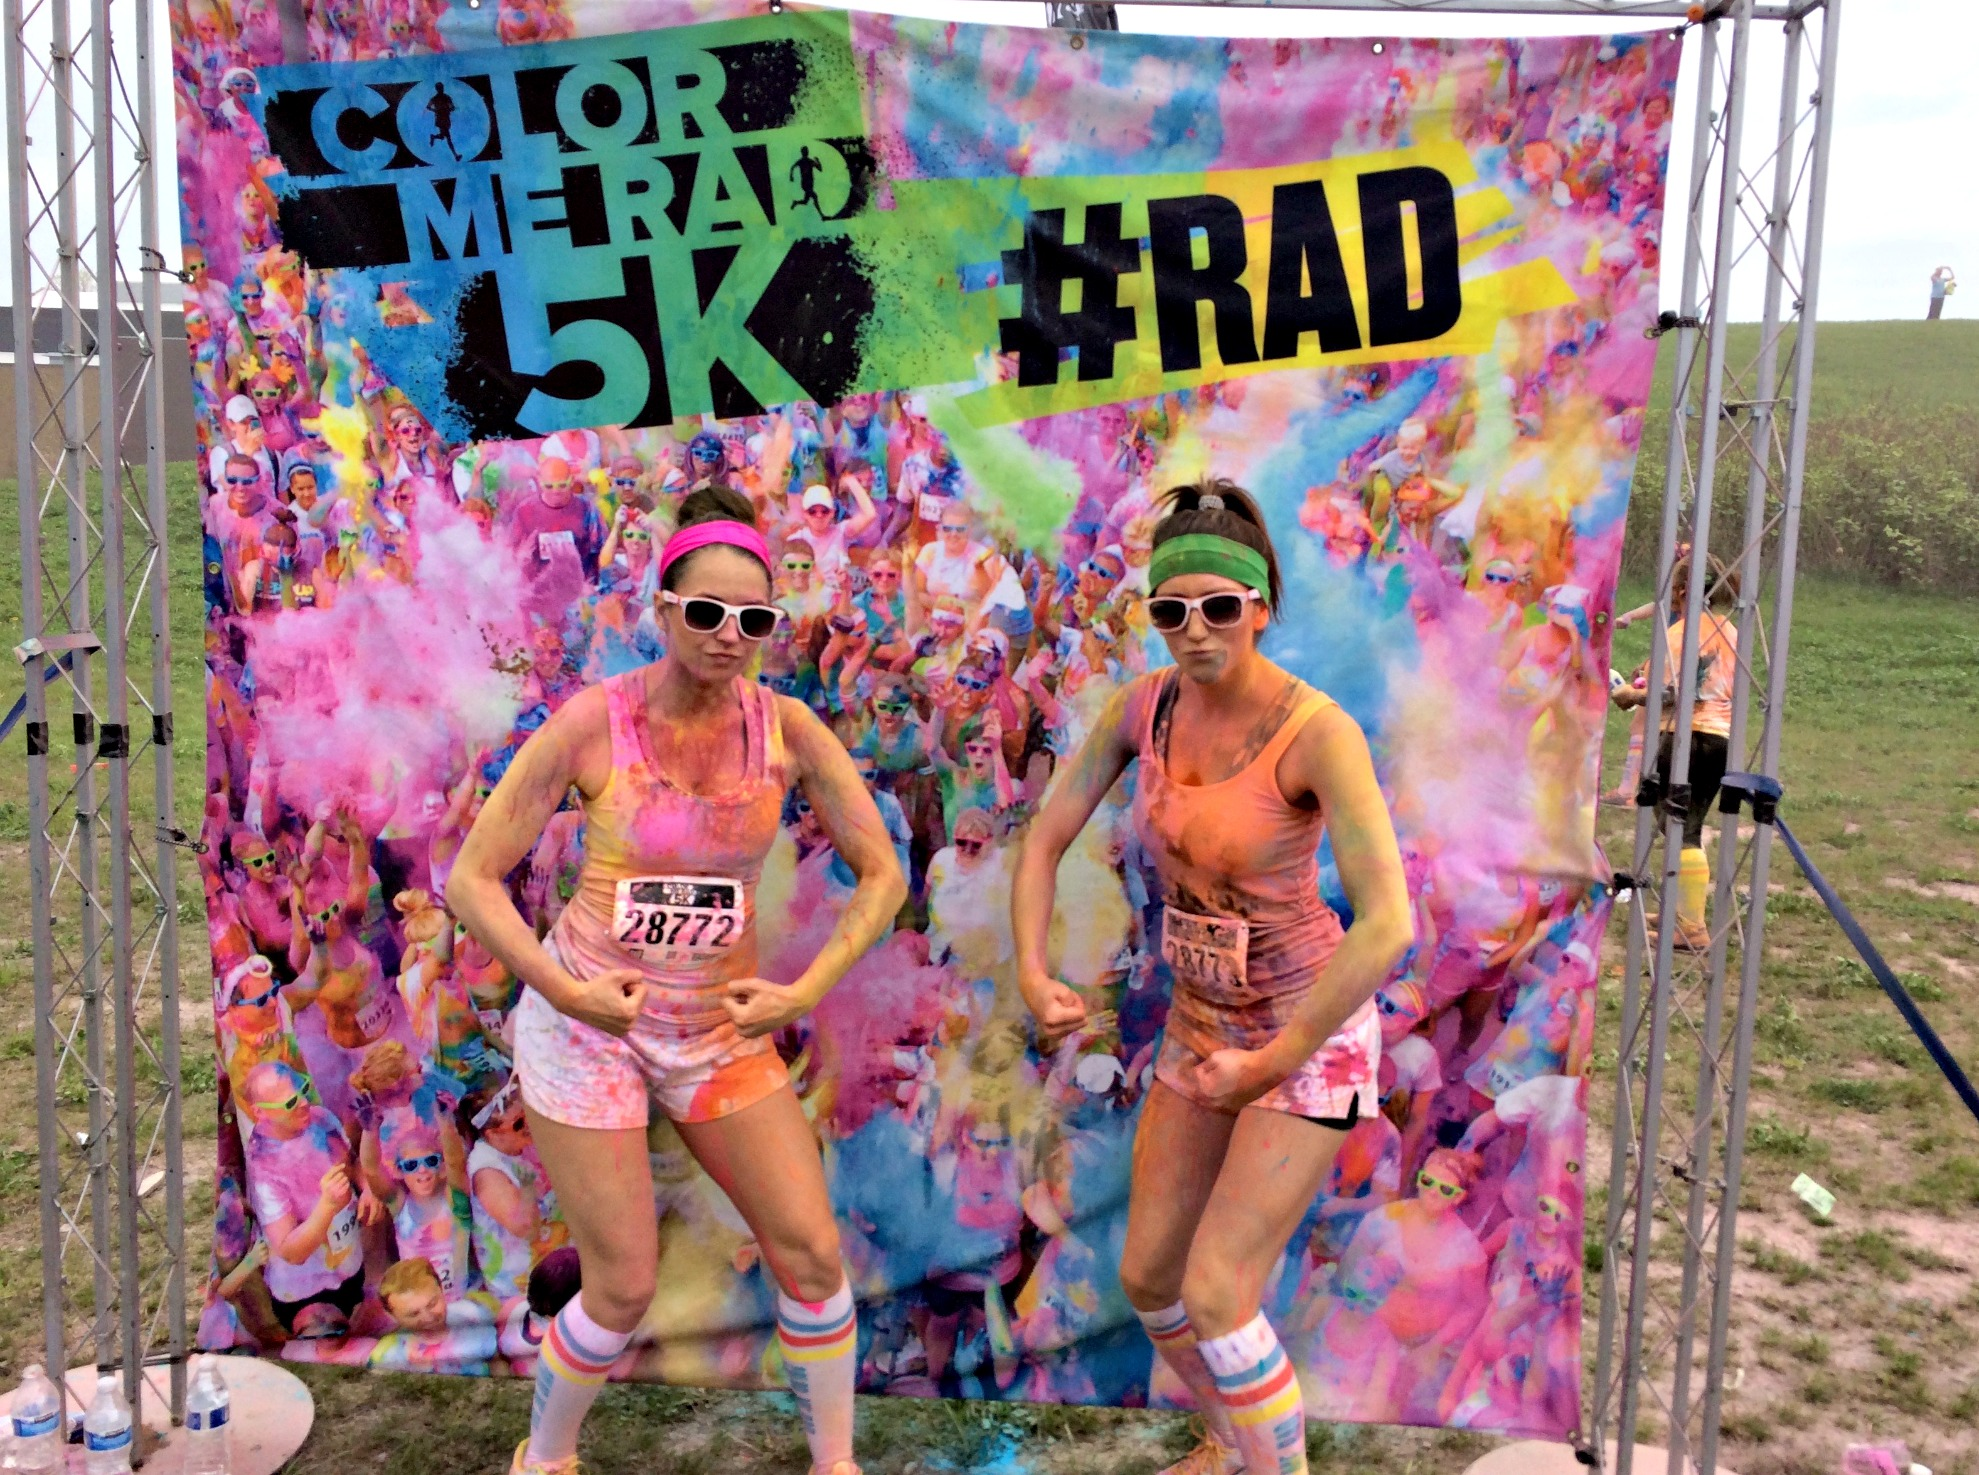 color me rad 5k #rad detroit 2015